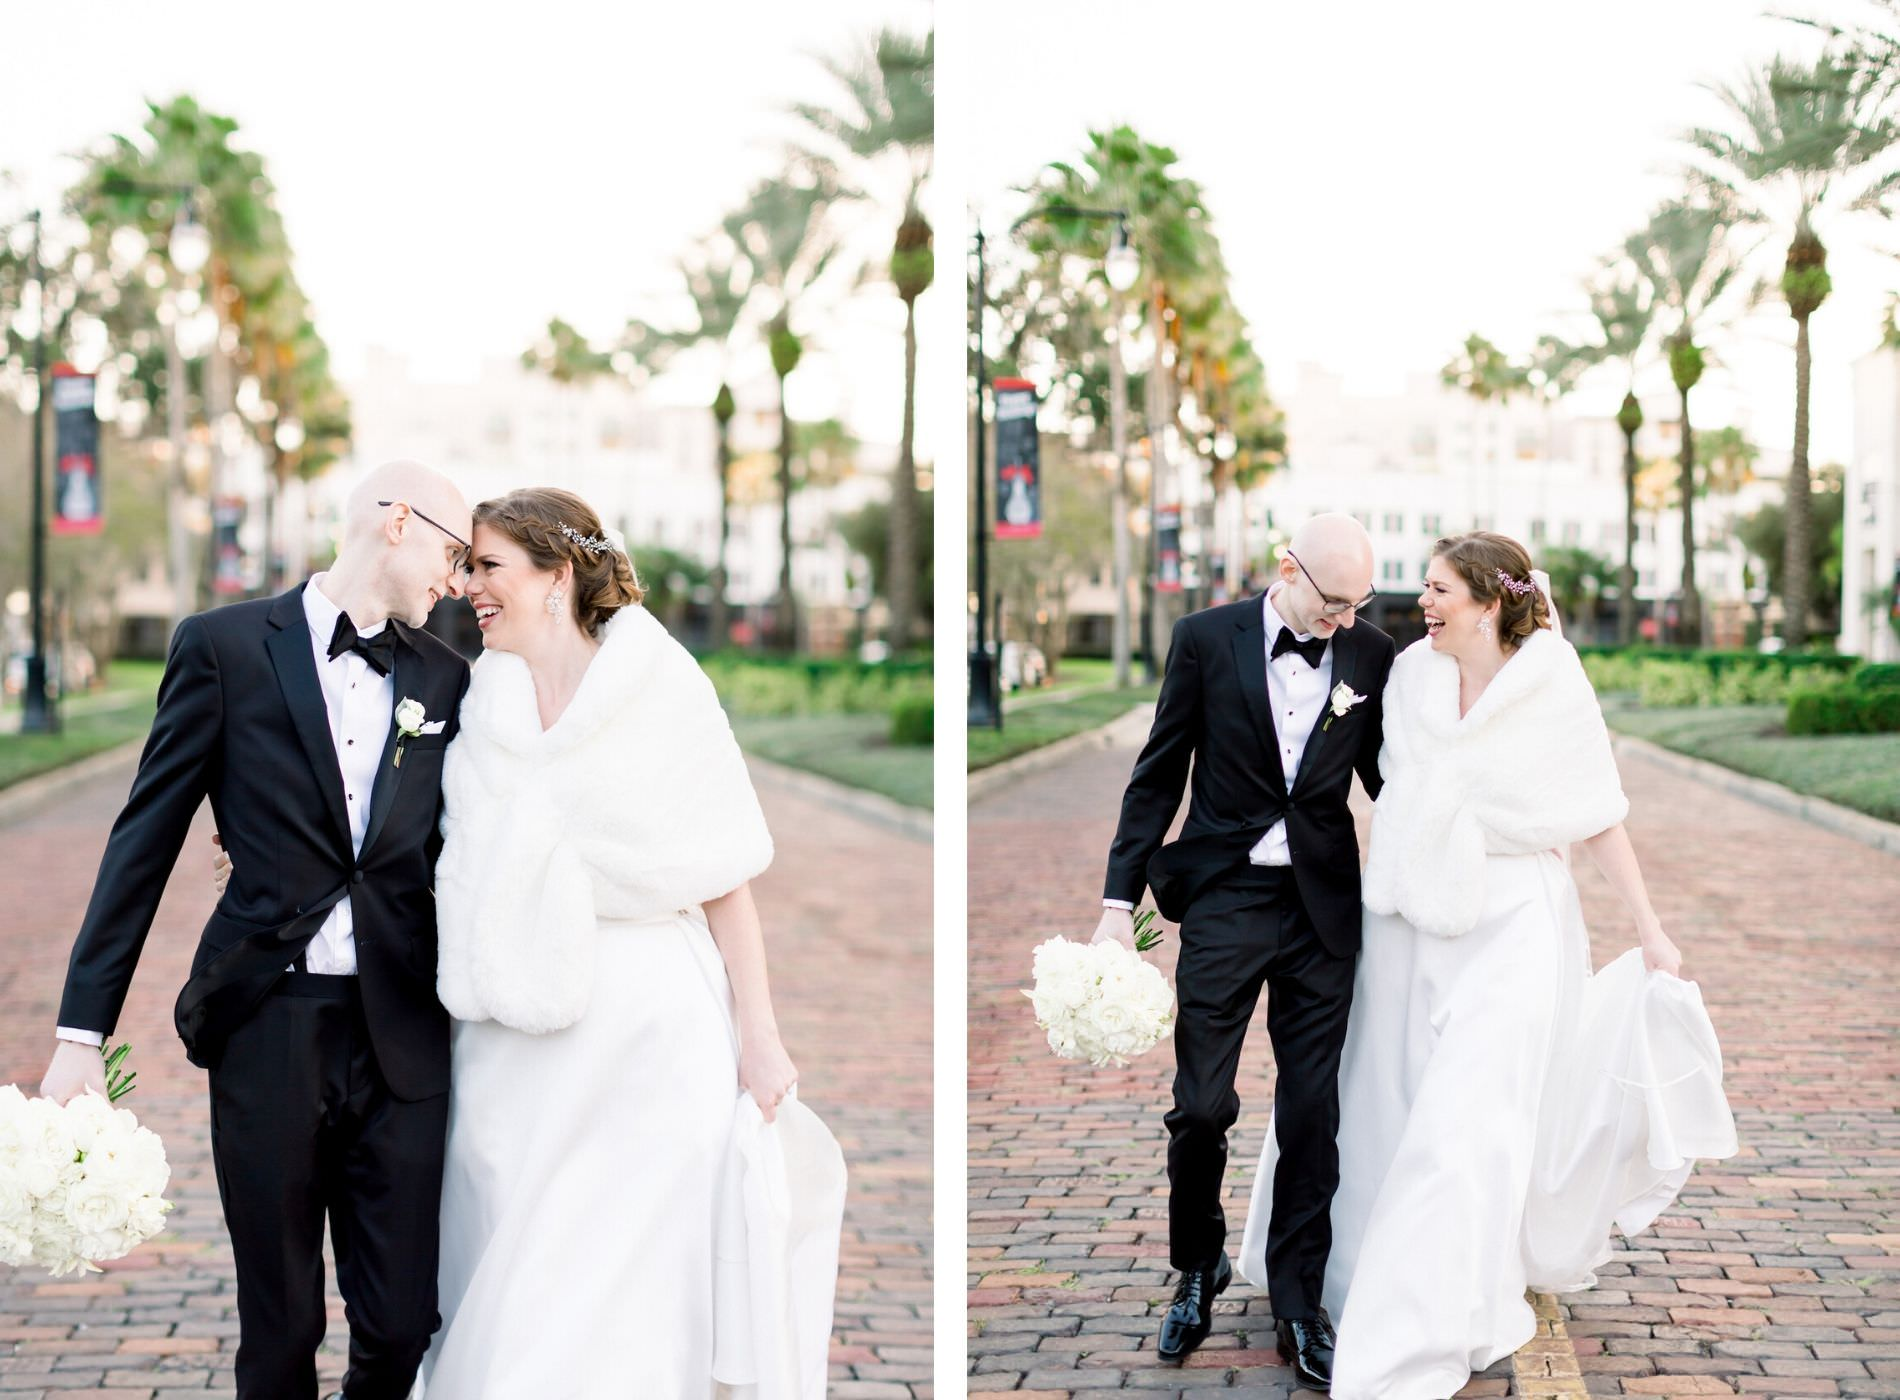 Classic Bride with White Fur Shawl and Groom on the Streets at The University of Tampa | Wedding Photographer Shauna and Jordon Photography | Wedding Hair and Makeup Femme Akoi Beauty Studio